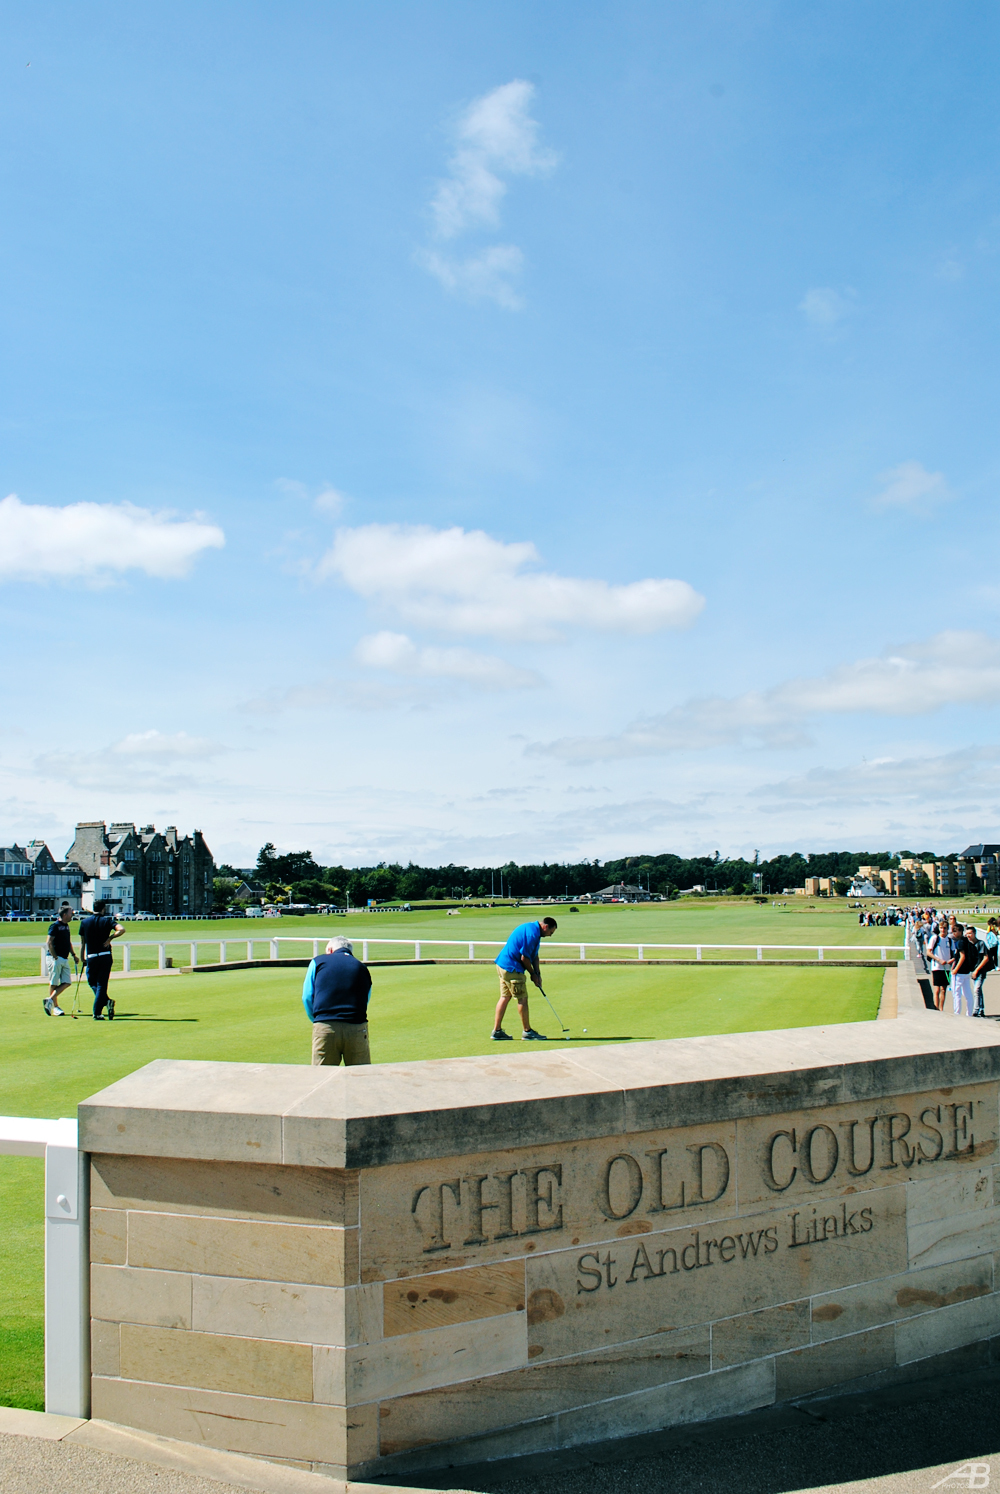 The Old Course, St Andrews Links